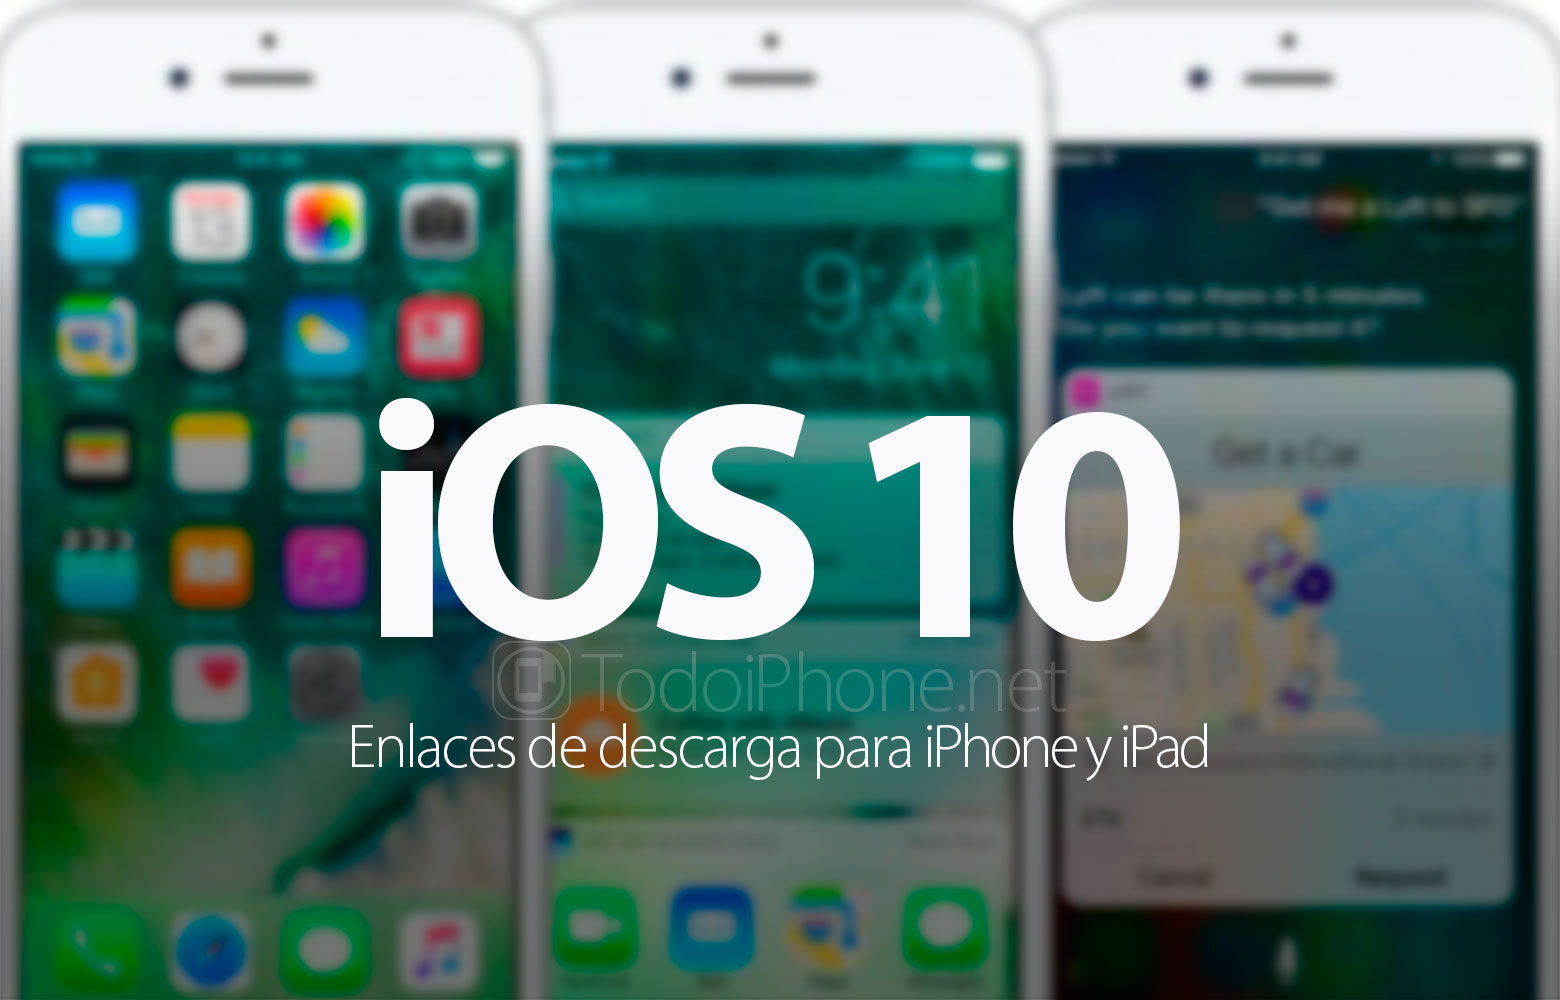 iOS 10 disponible para descargar e instalar en iPhone y iPad